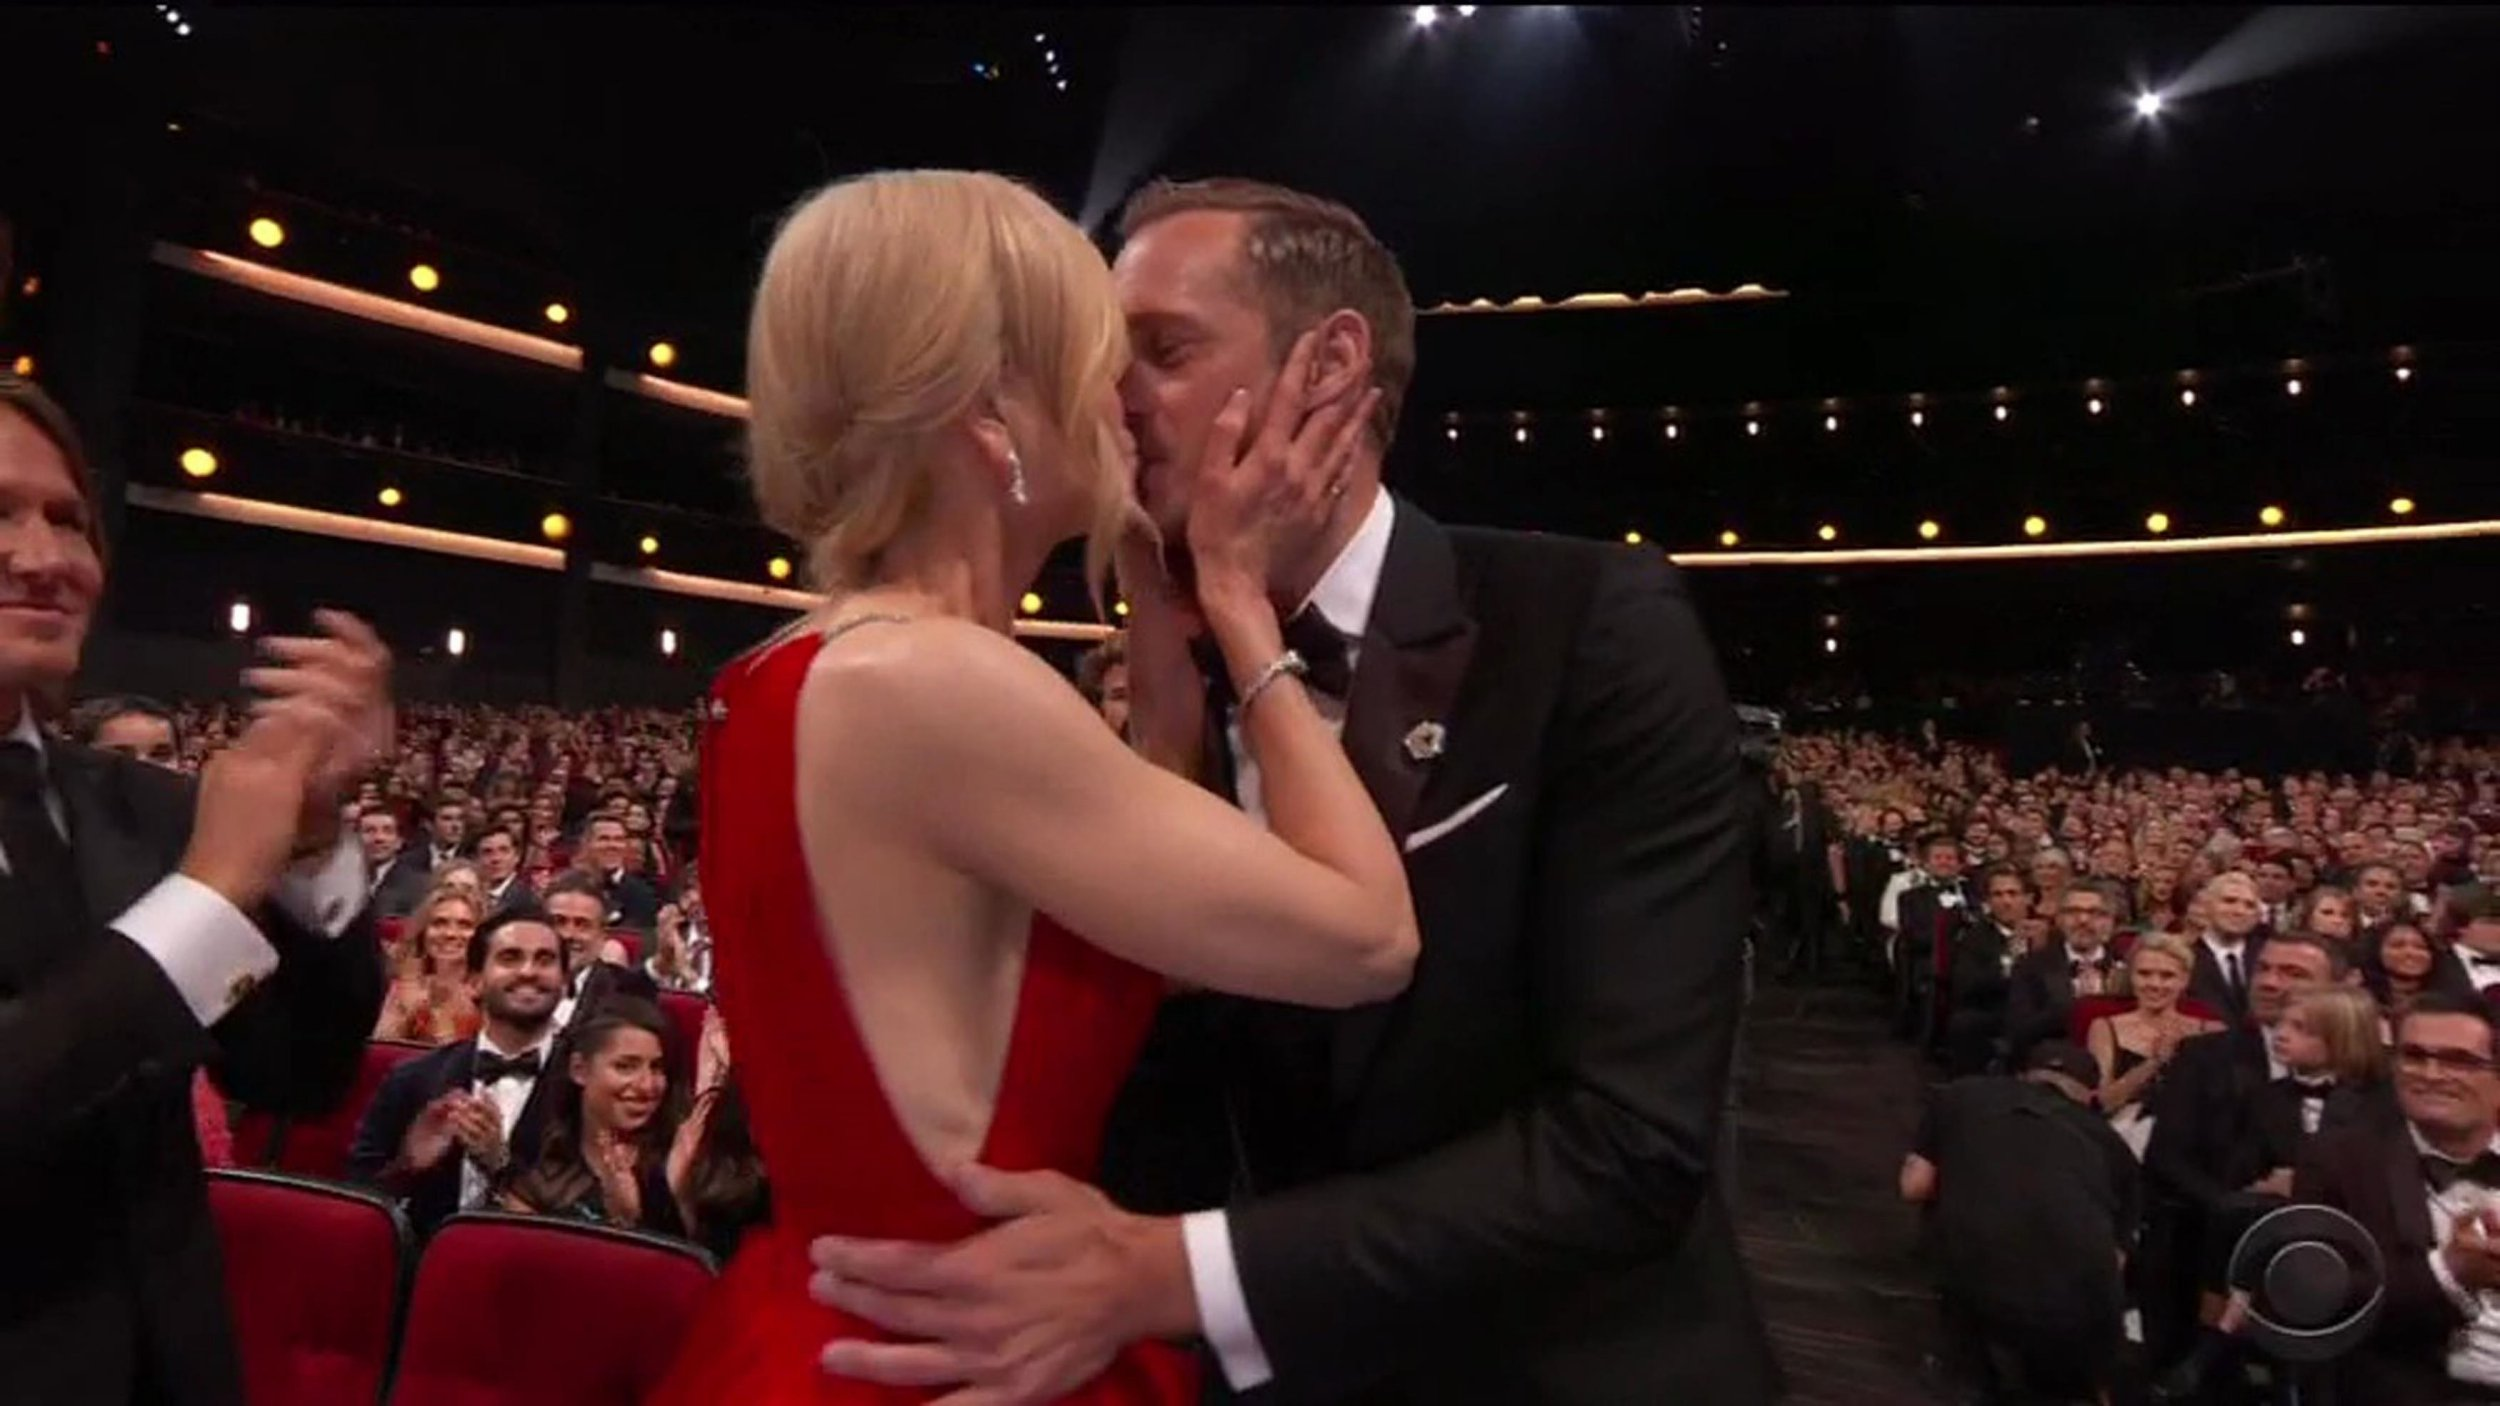 Nicole Kidman kisses Big Little Lies co-star Alexander Skarsgard on the lips in front of husband as he wins Emmy